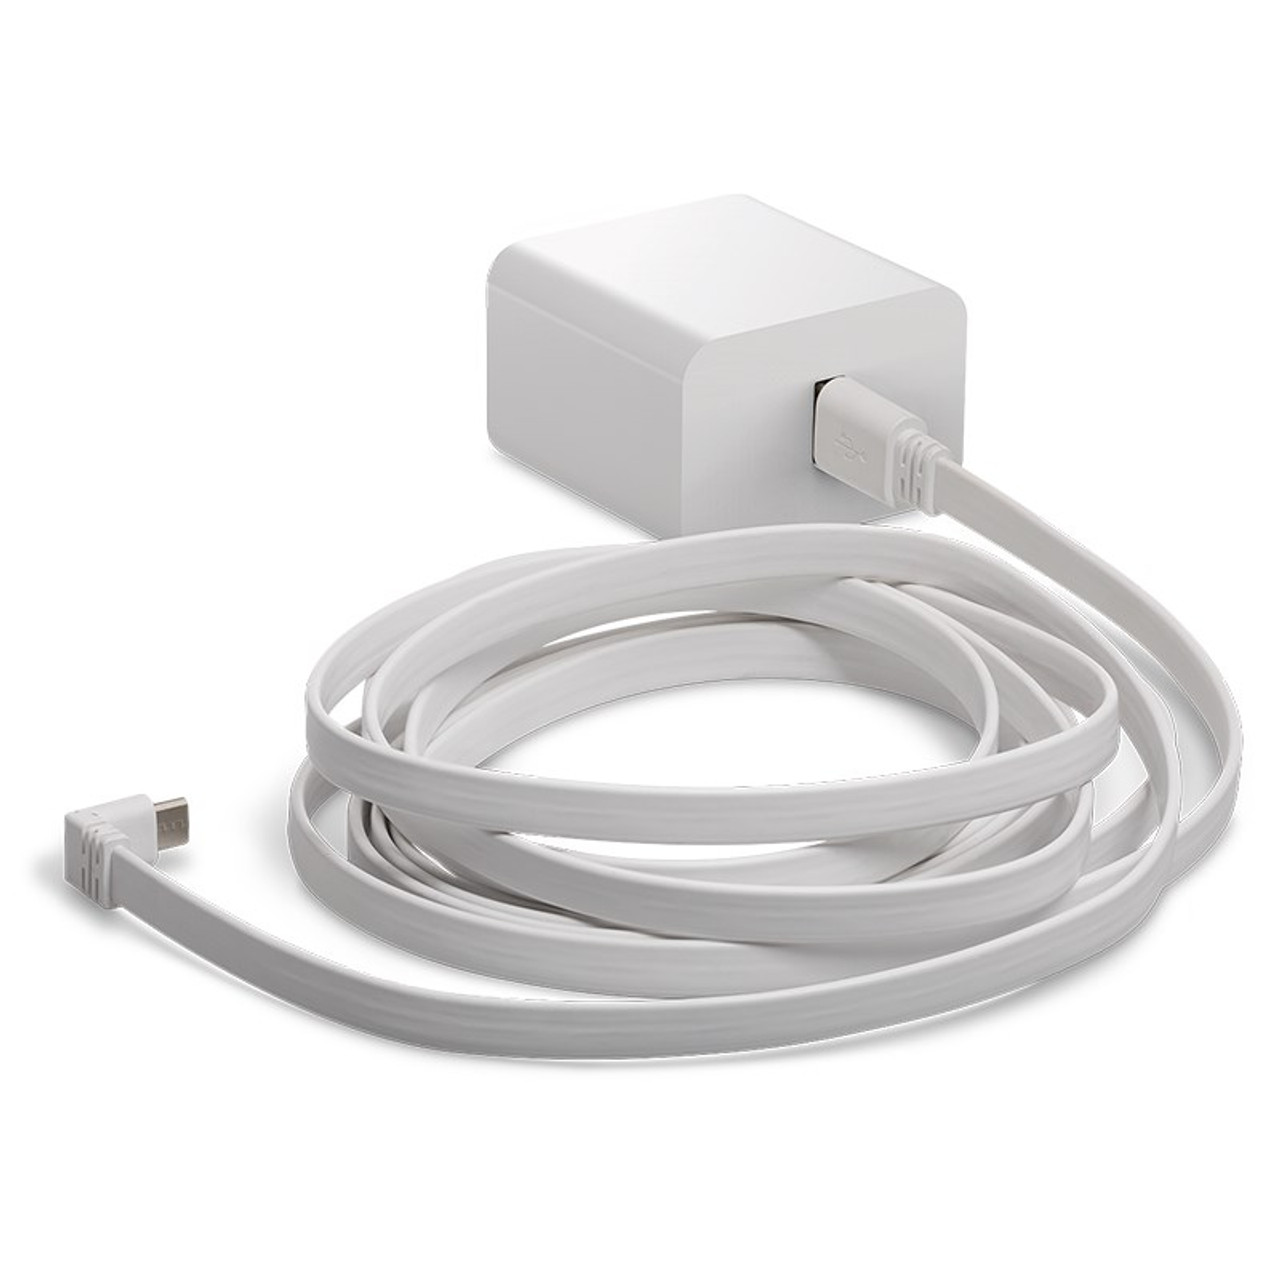 Image for Arlo Indoor Power Cable and Adapter for Pro, Pro 2 & Security Light CX Computer Superstore